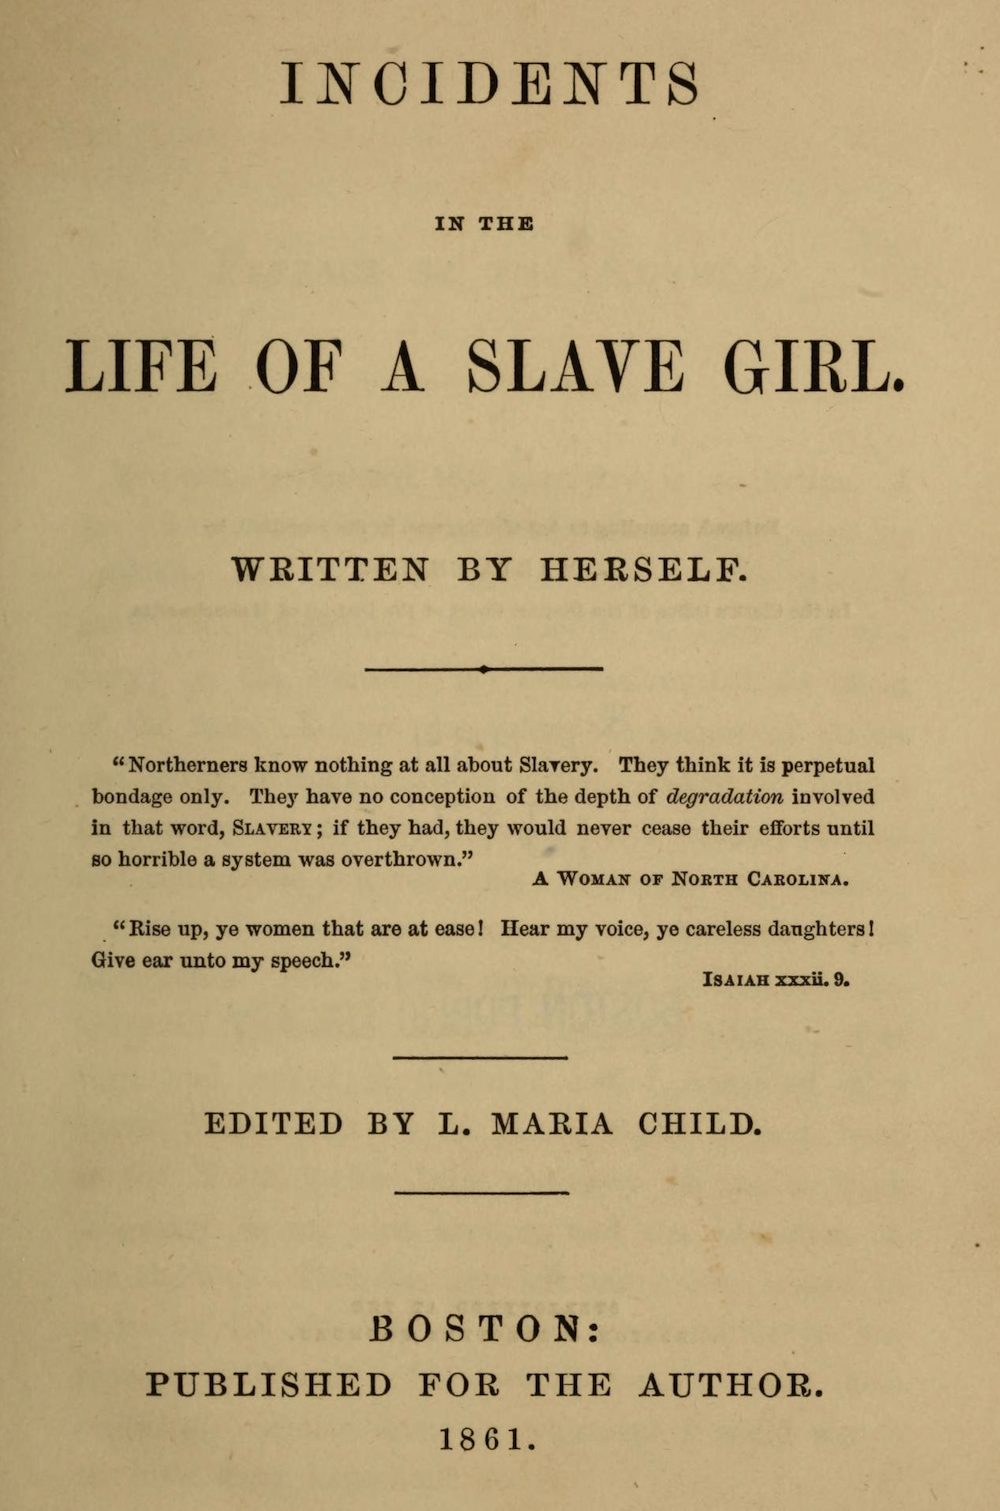 Image result for incidents in the life of a slave girl linda brent